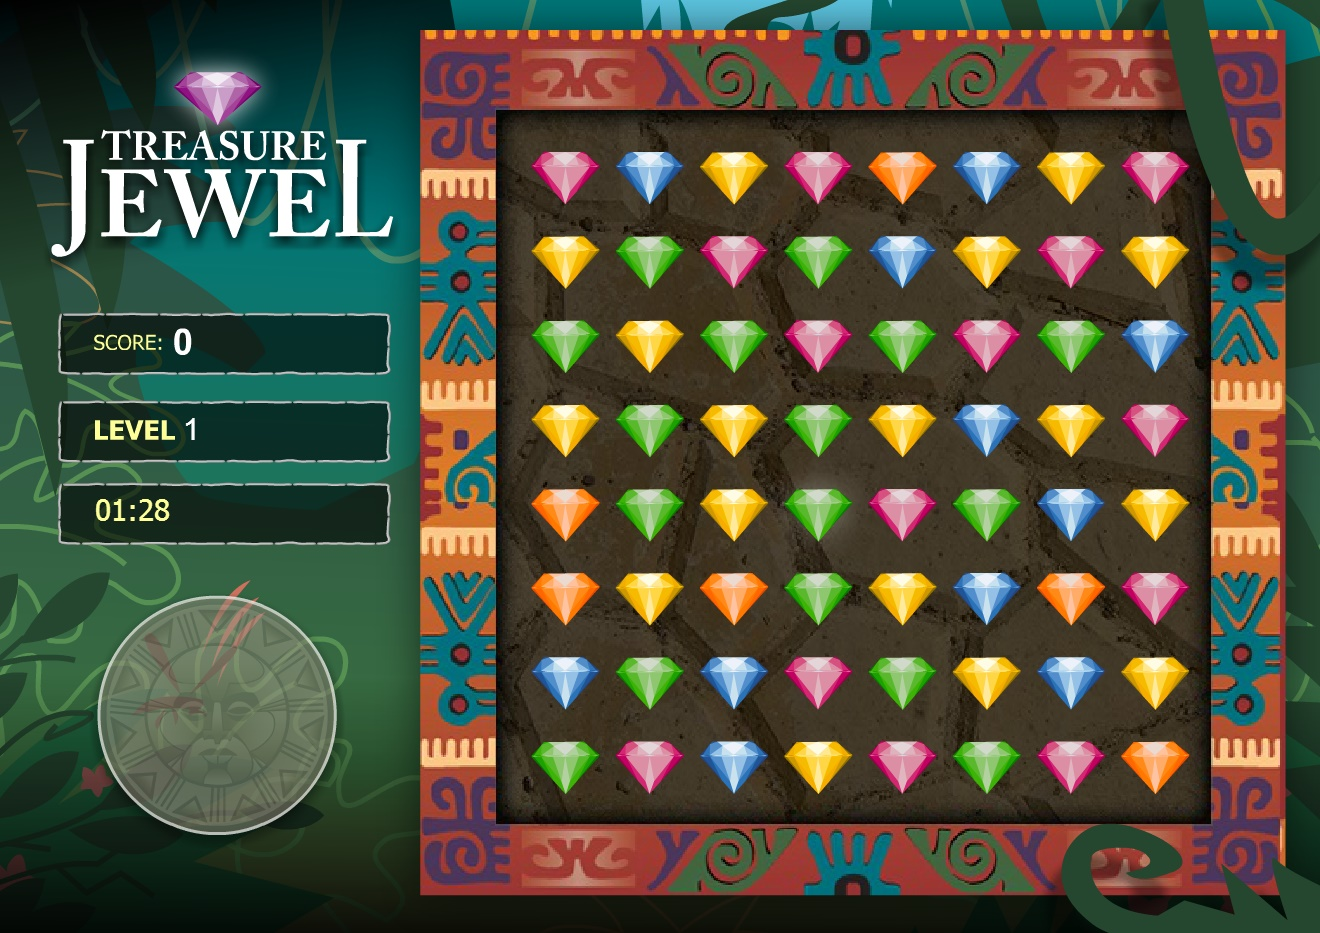 Treasure-Jewel-Play-Free-Online-Game.jpg